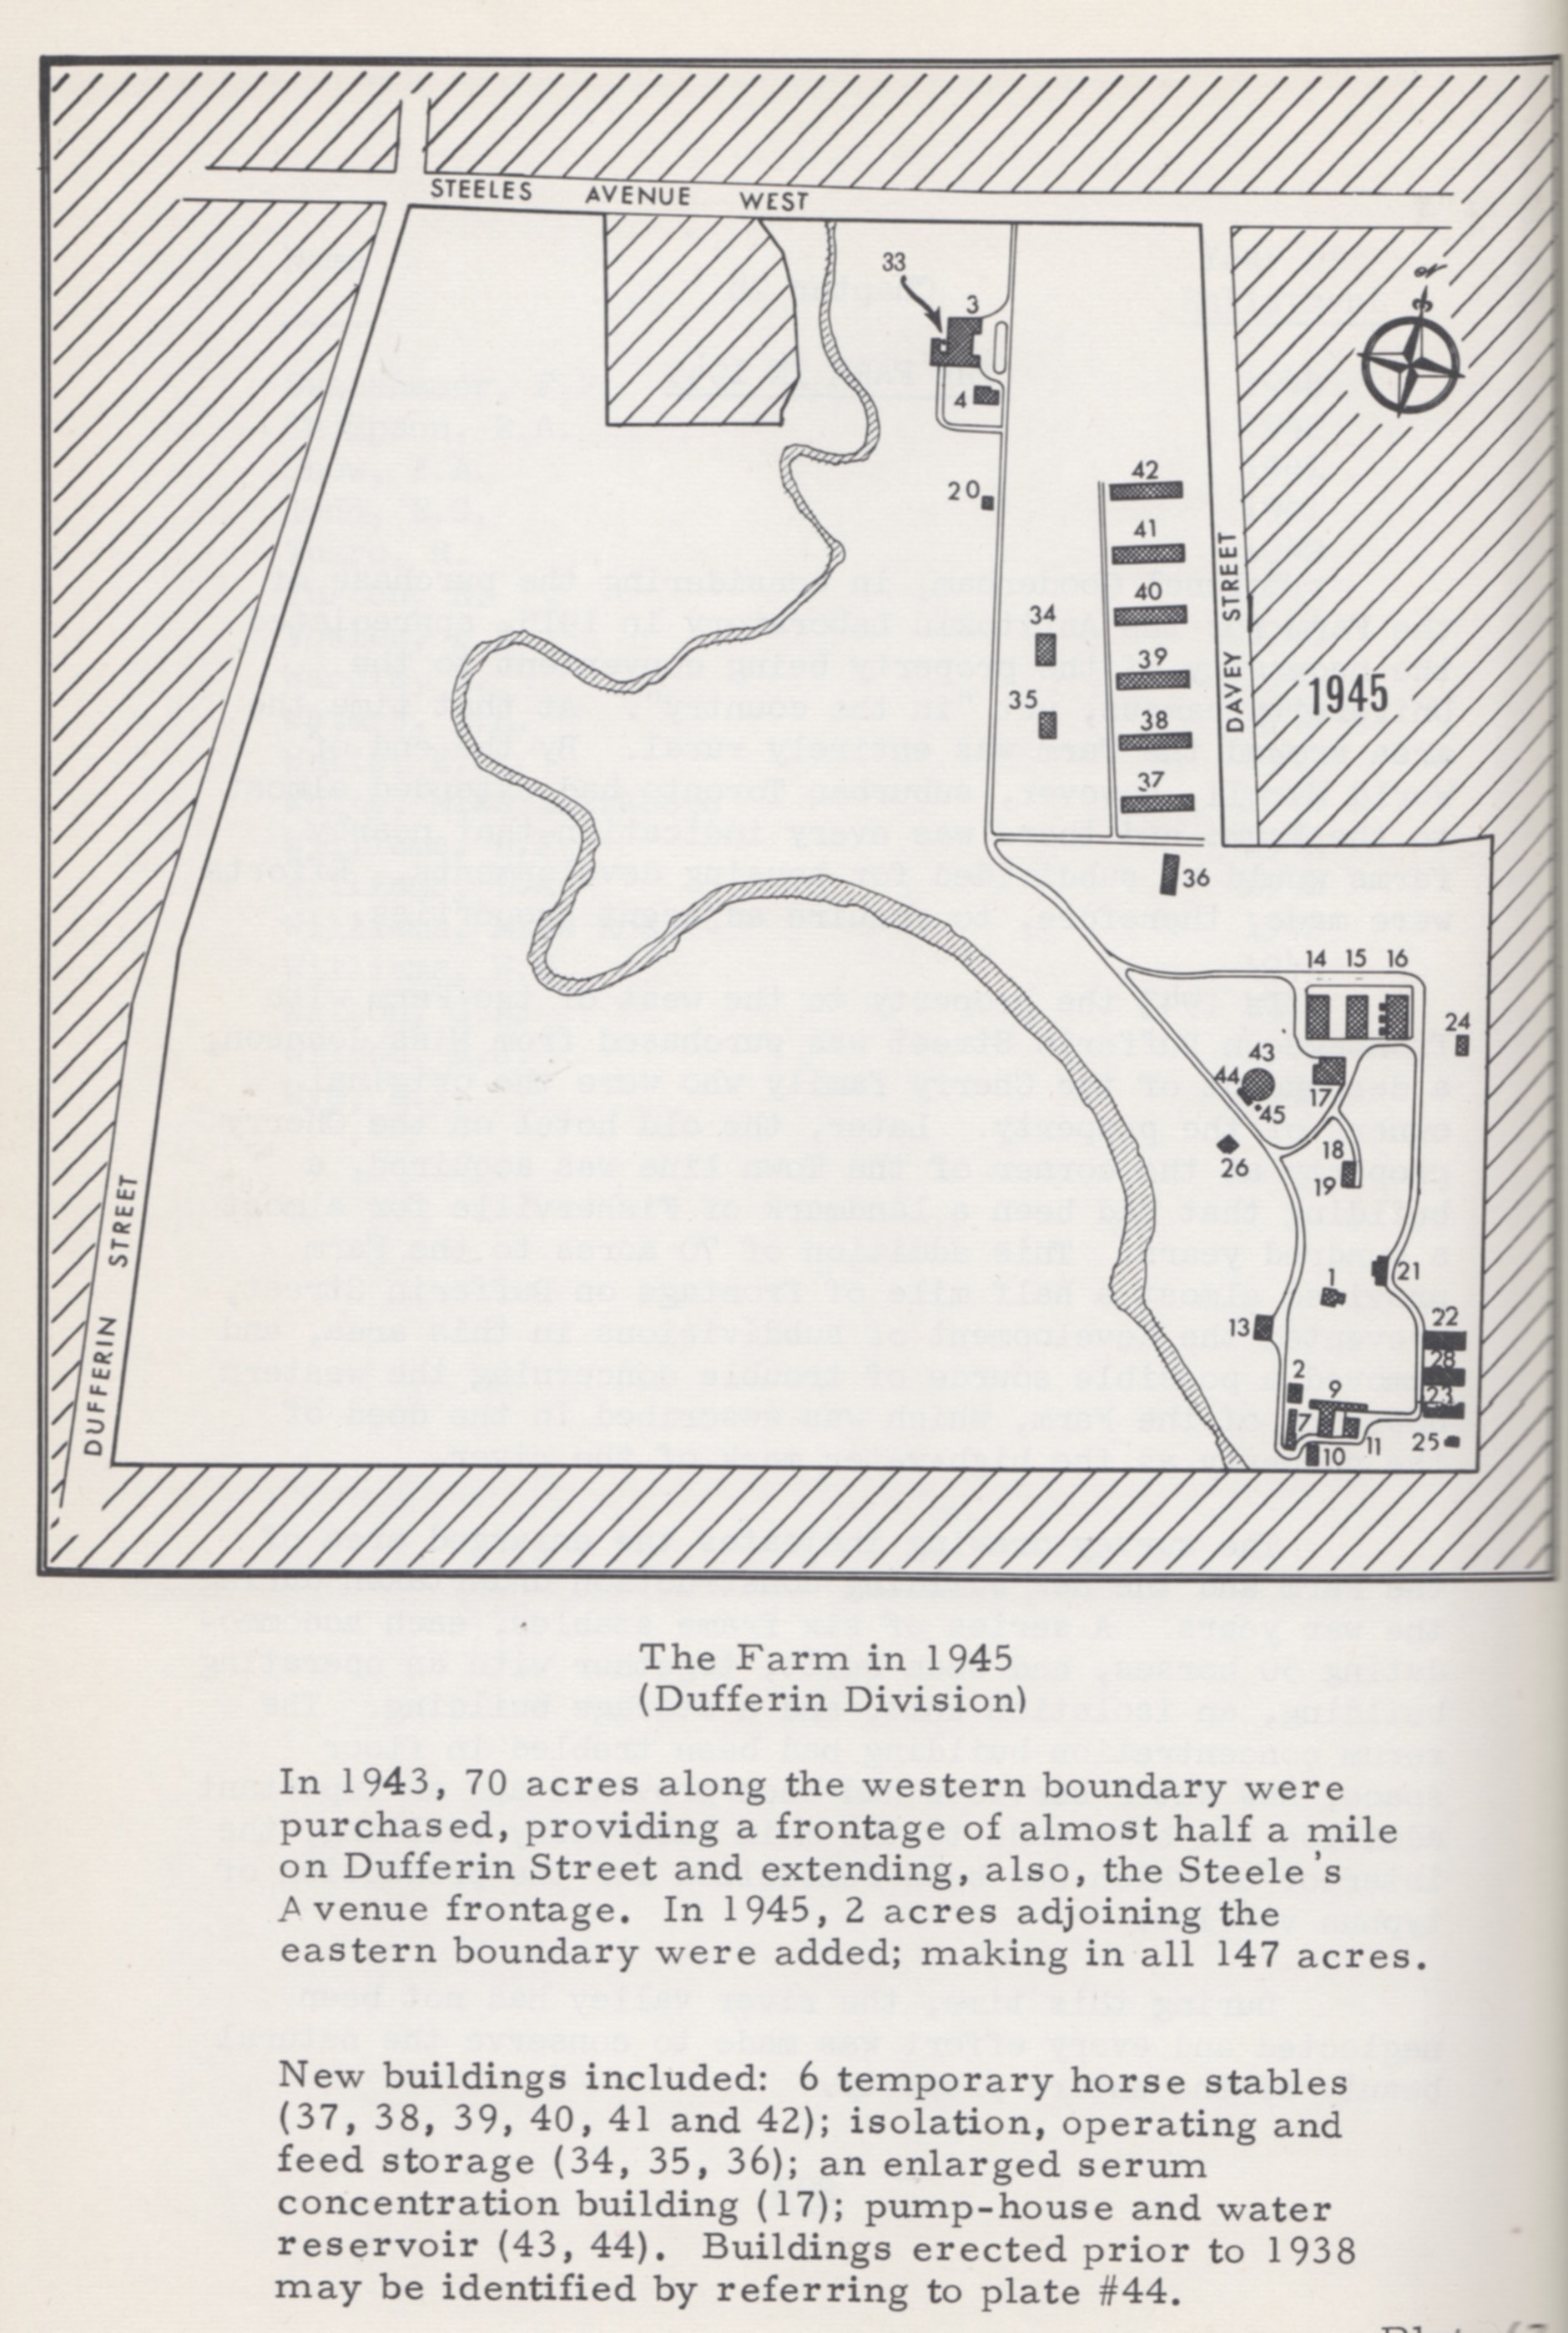 "This map illustrates the layout and recent expansion of the Connaught Farm site in 1945, although in 1944 it was officially designated as the ""Dufferin Division"" following a suggestion by Princess Alice after her visit to the Labs in 1943. She mentioned that the site did not look as much like a farm as expected and thus thought it should have a more appropriate name. After being told that she had travelled along Dufferin Street to get to the site, a street named after Lord Dufferin, she suggested the ""Dufferin Division"" name, which she also thought would be in keeping with the honour paid to the Duke of Connaught in the naming of the Laboratories."